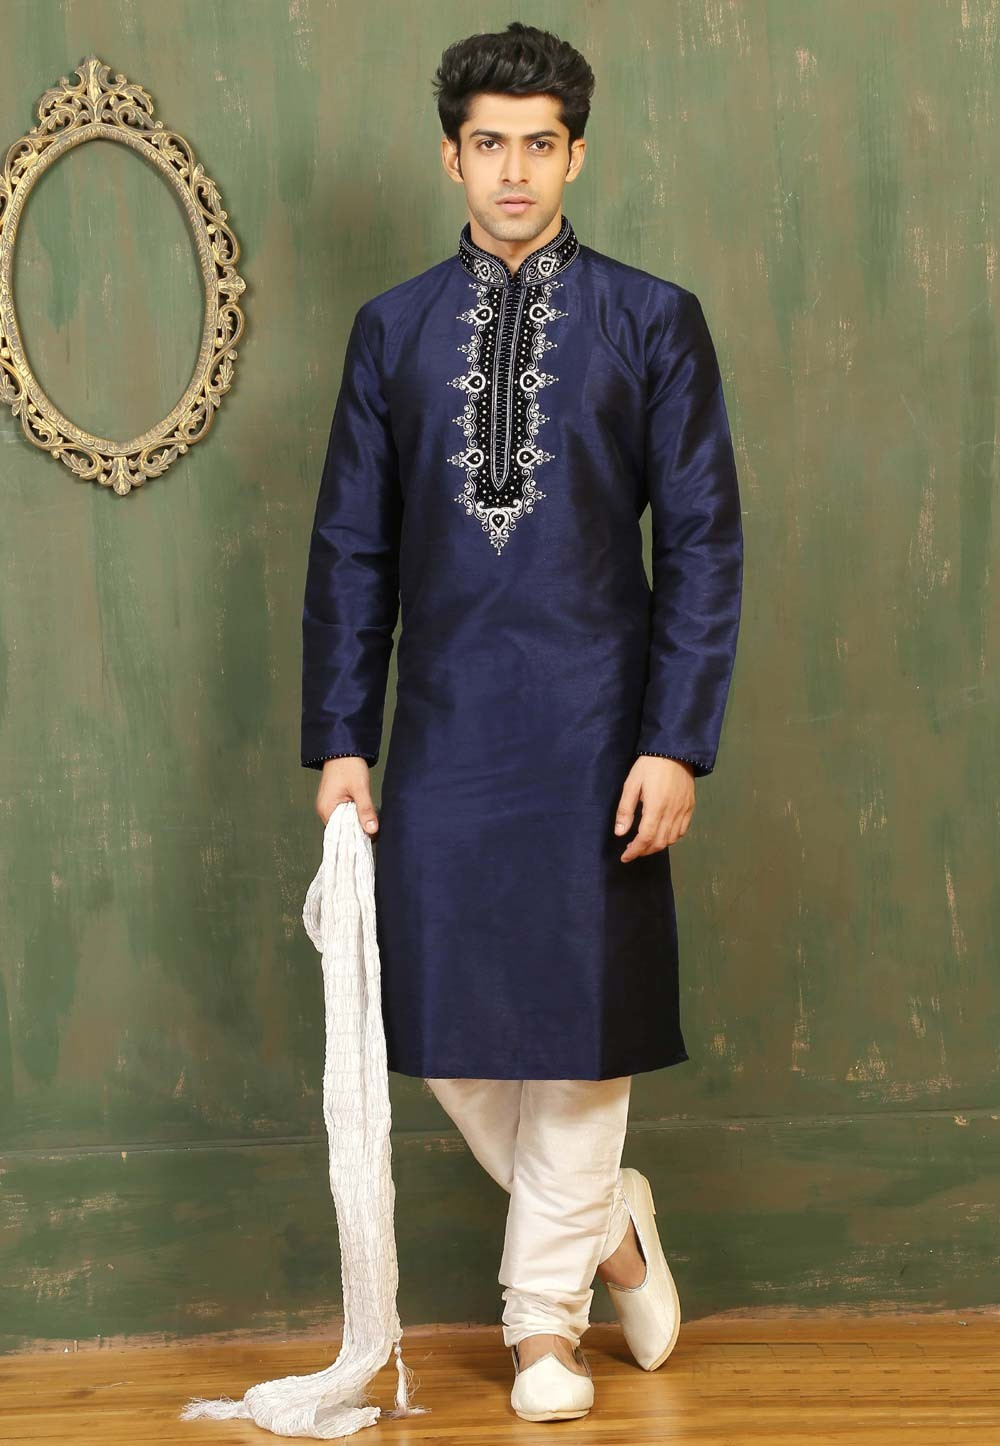 Navy Blue Color Dupion Art Silk Men's Readymade Kurta Pajama.